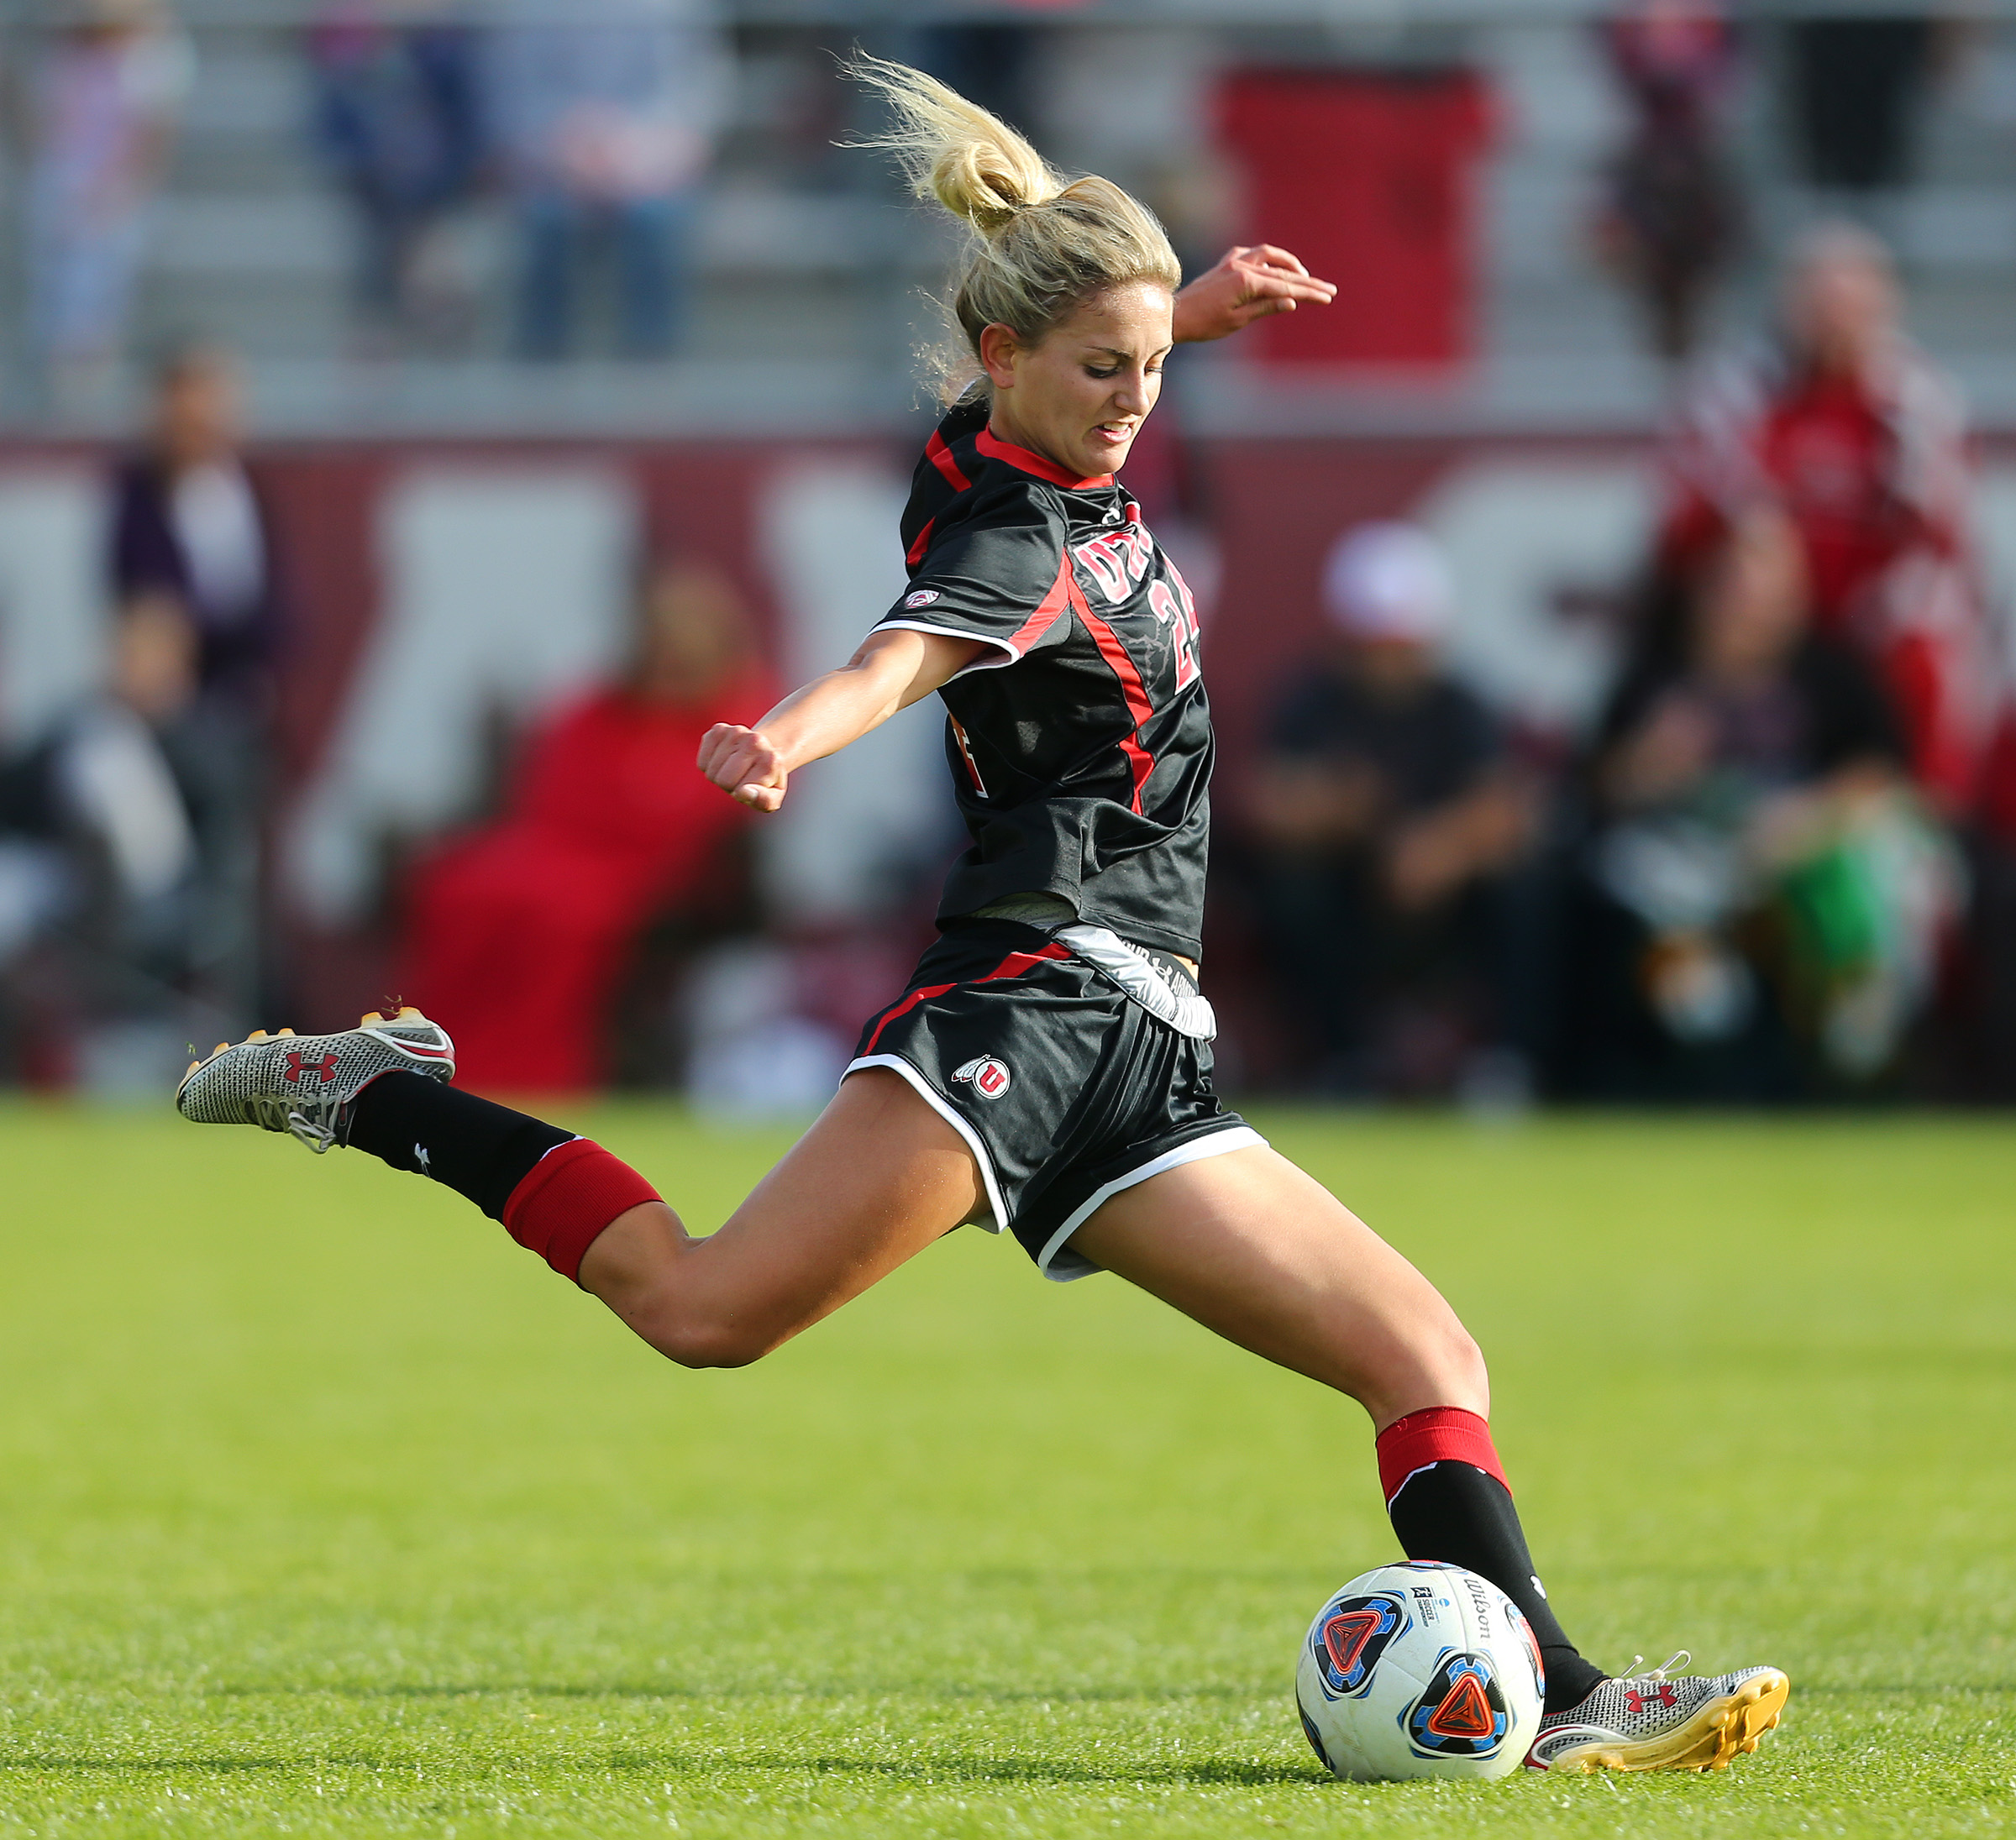 Utah Eden Jacobsen (24) tries a shot on goal as The University of Utah and Texas Tech play in NCAA tournament soccer action in Salt Lake City on Saturday, Nov. 12, 2016.